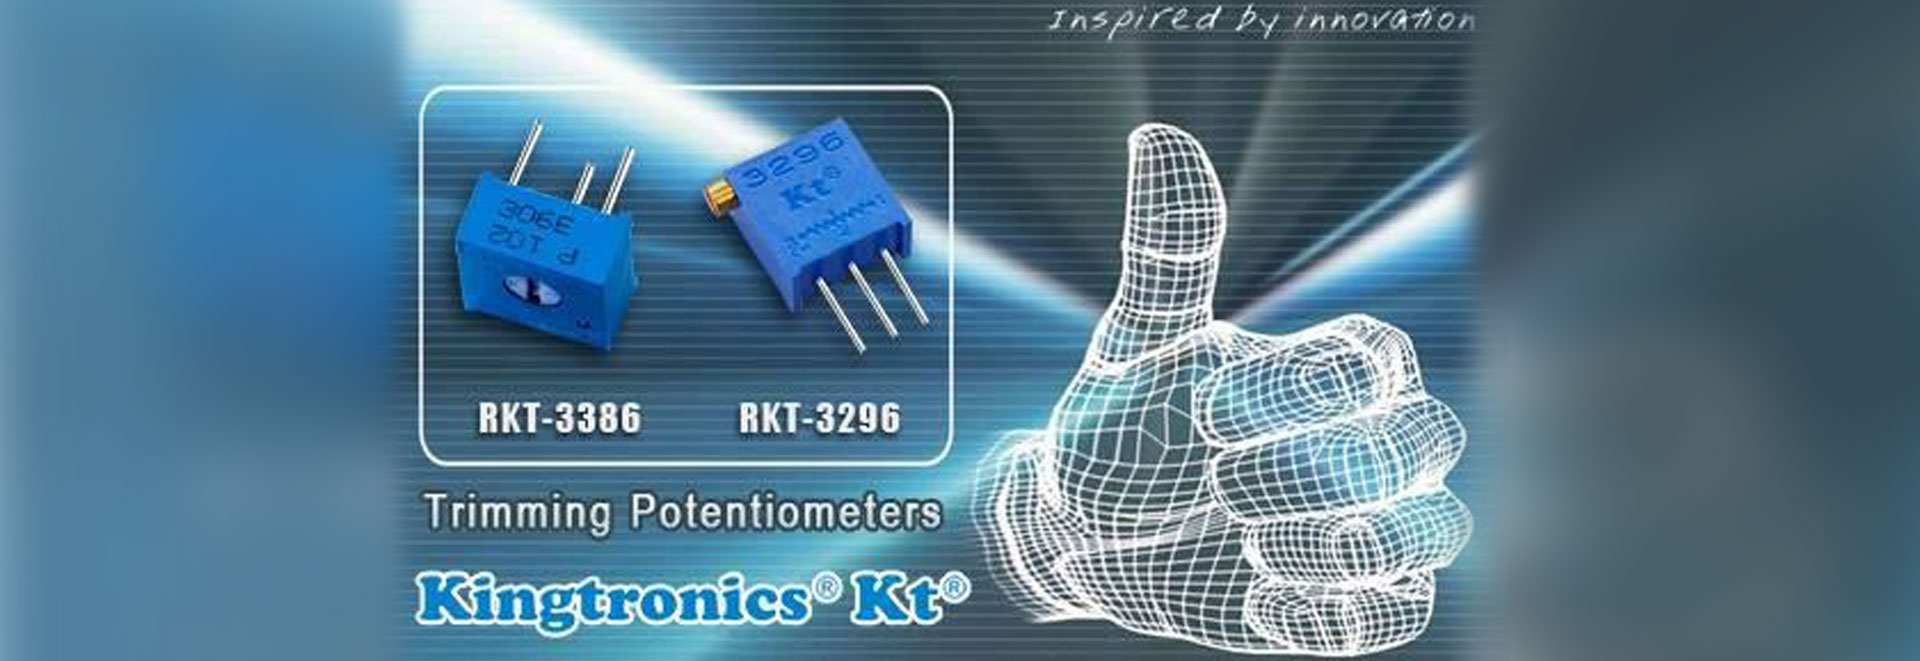 Inspired by Innovation, Trimming Potentiometers, Kingtronics KT